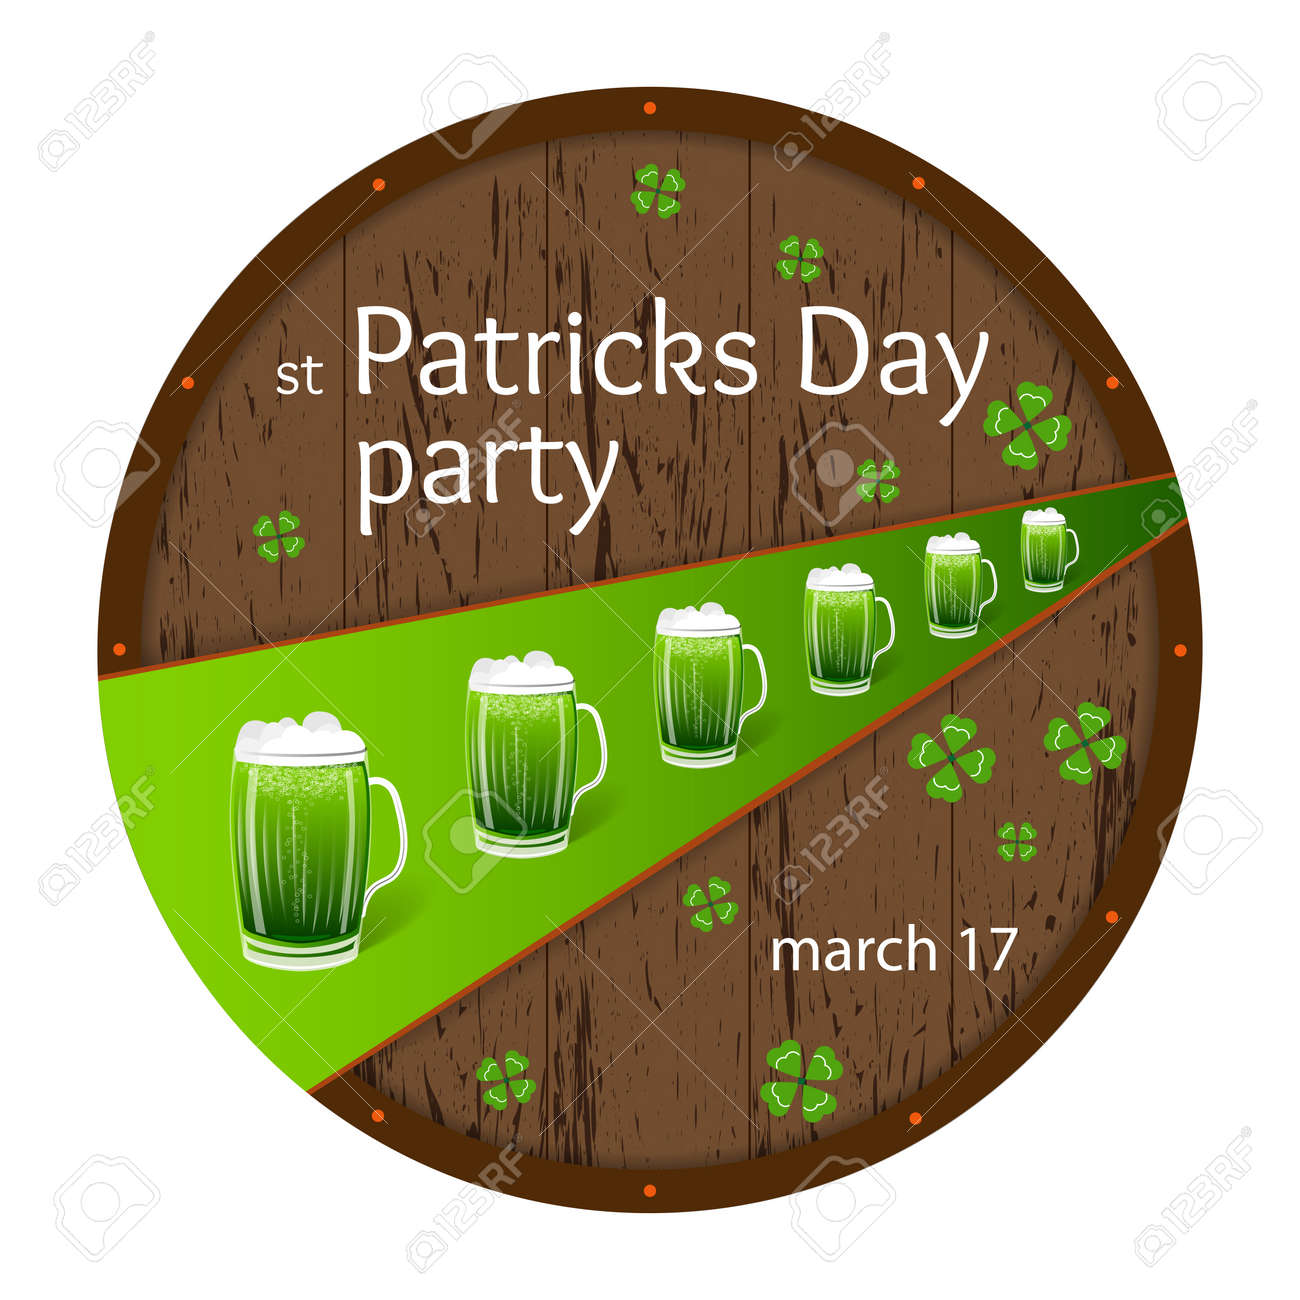 design for st patricks day beer party invitation poster wooden